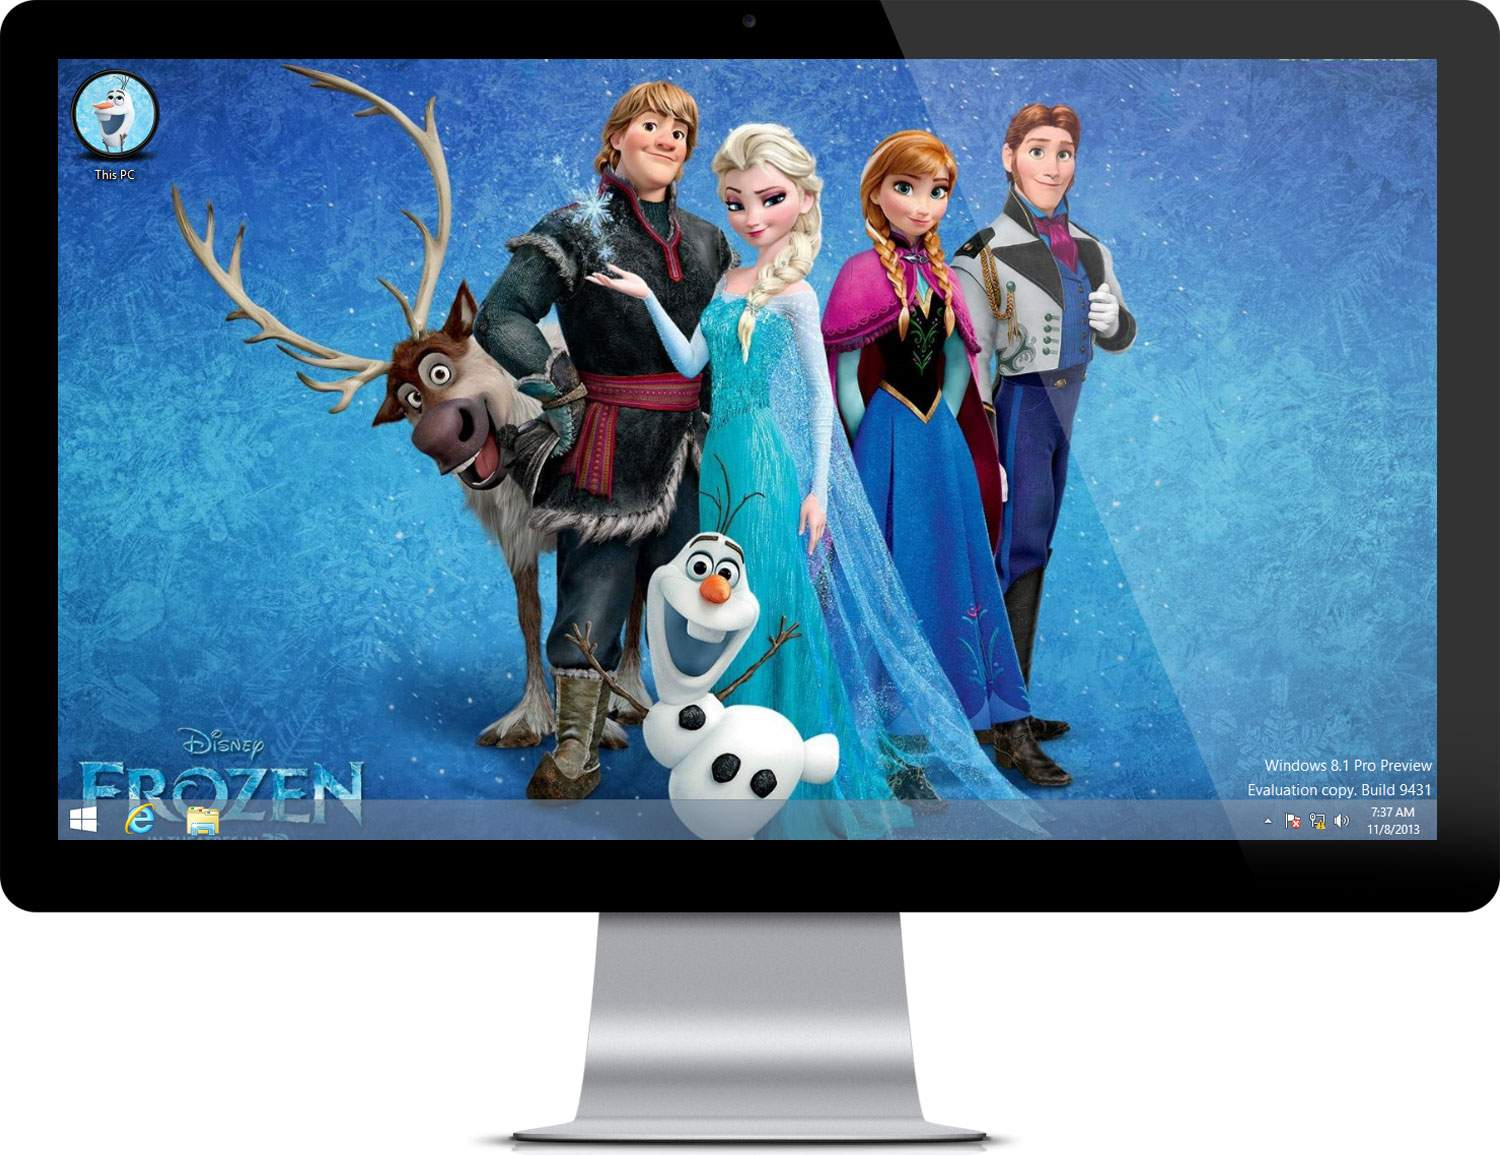 Frozen Movie Theme on WIndows 7 computer 1500x1155